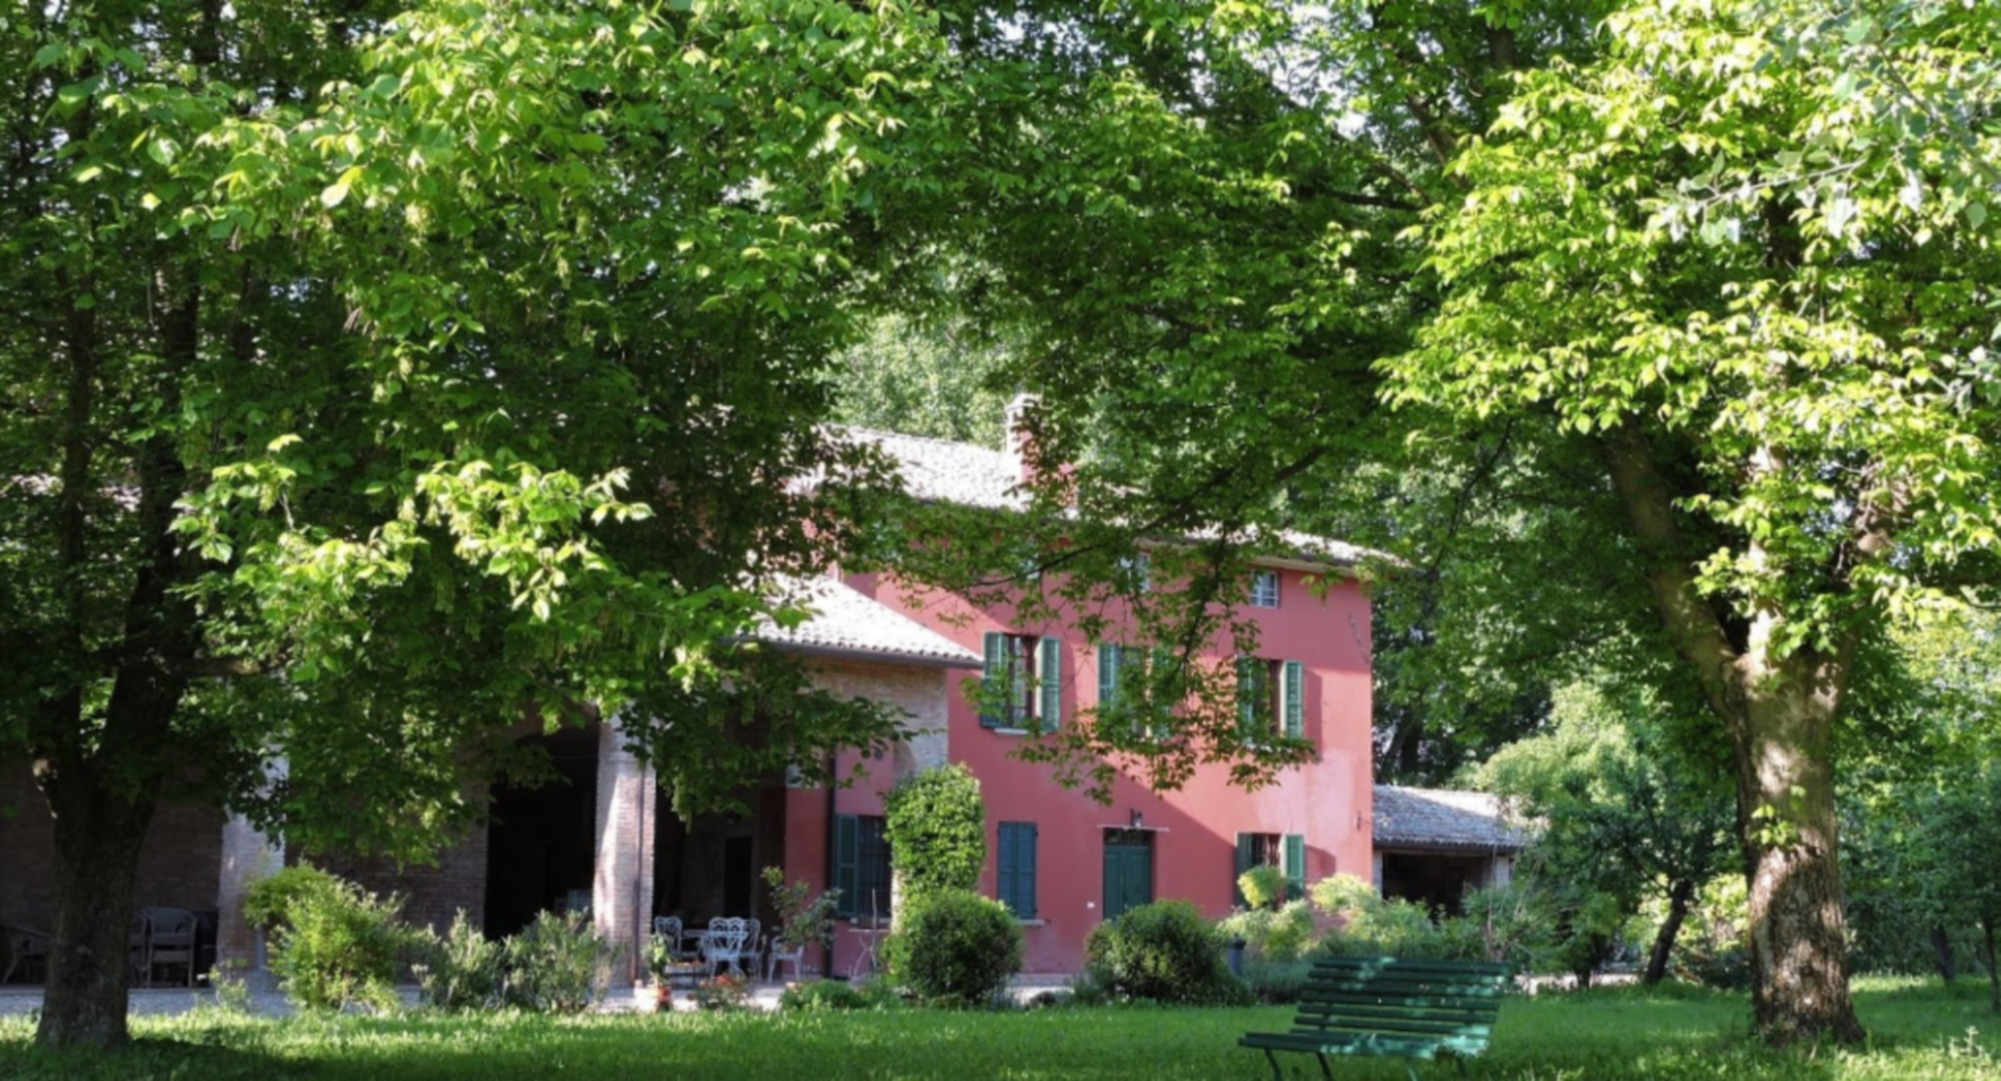 A small house in a tree at Podere Merlo Bed and Breakfast.